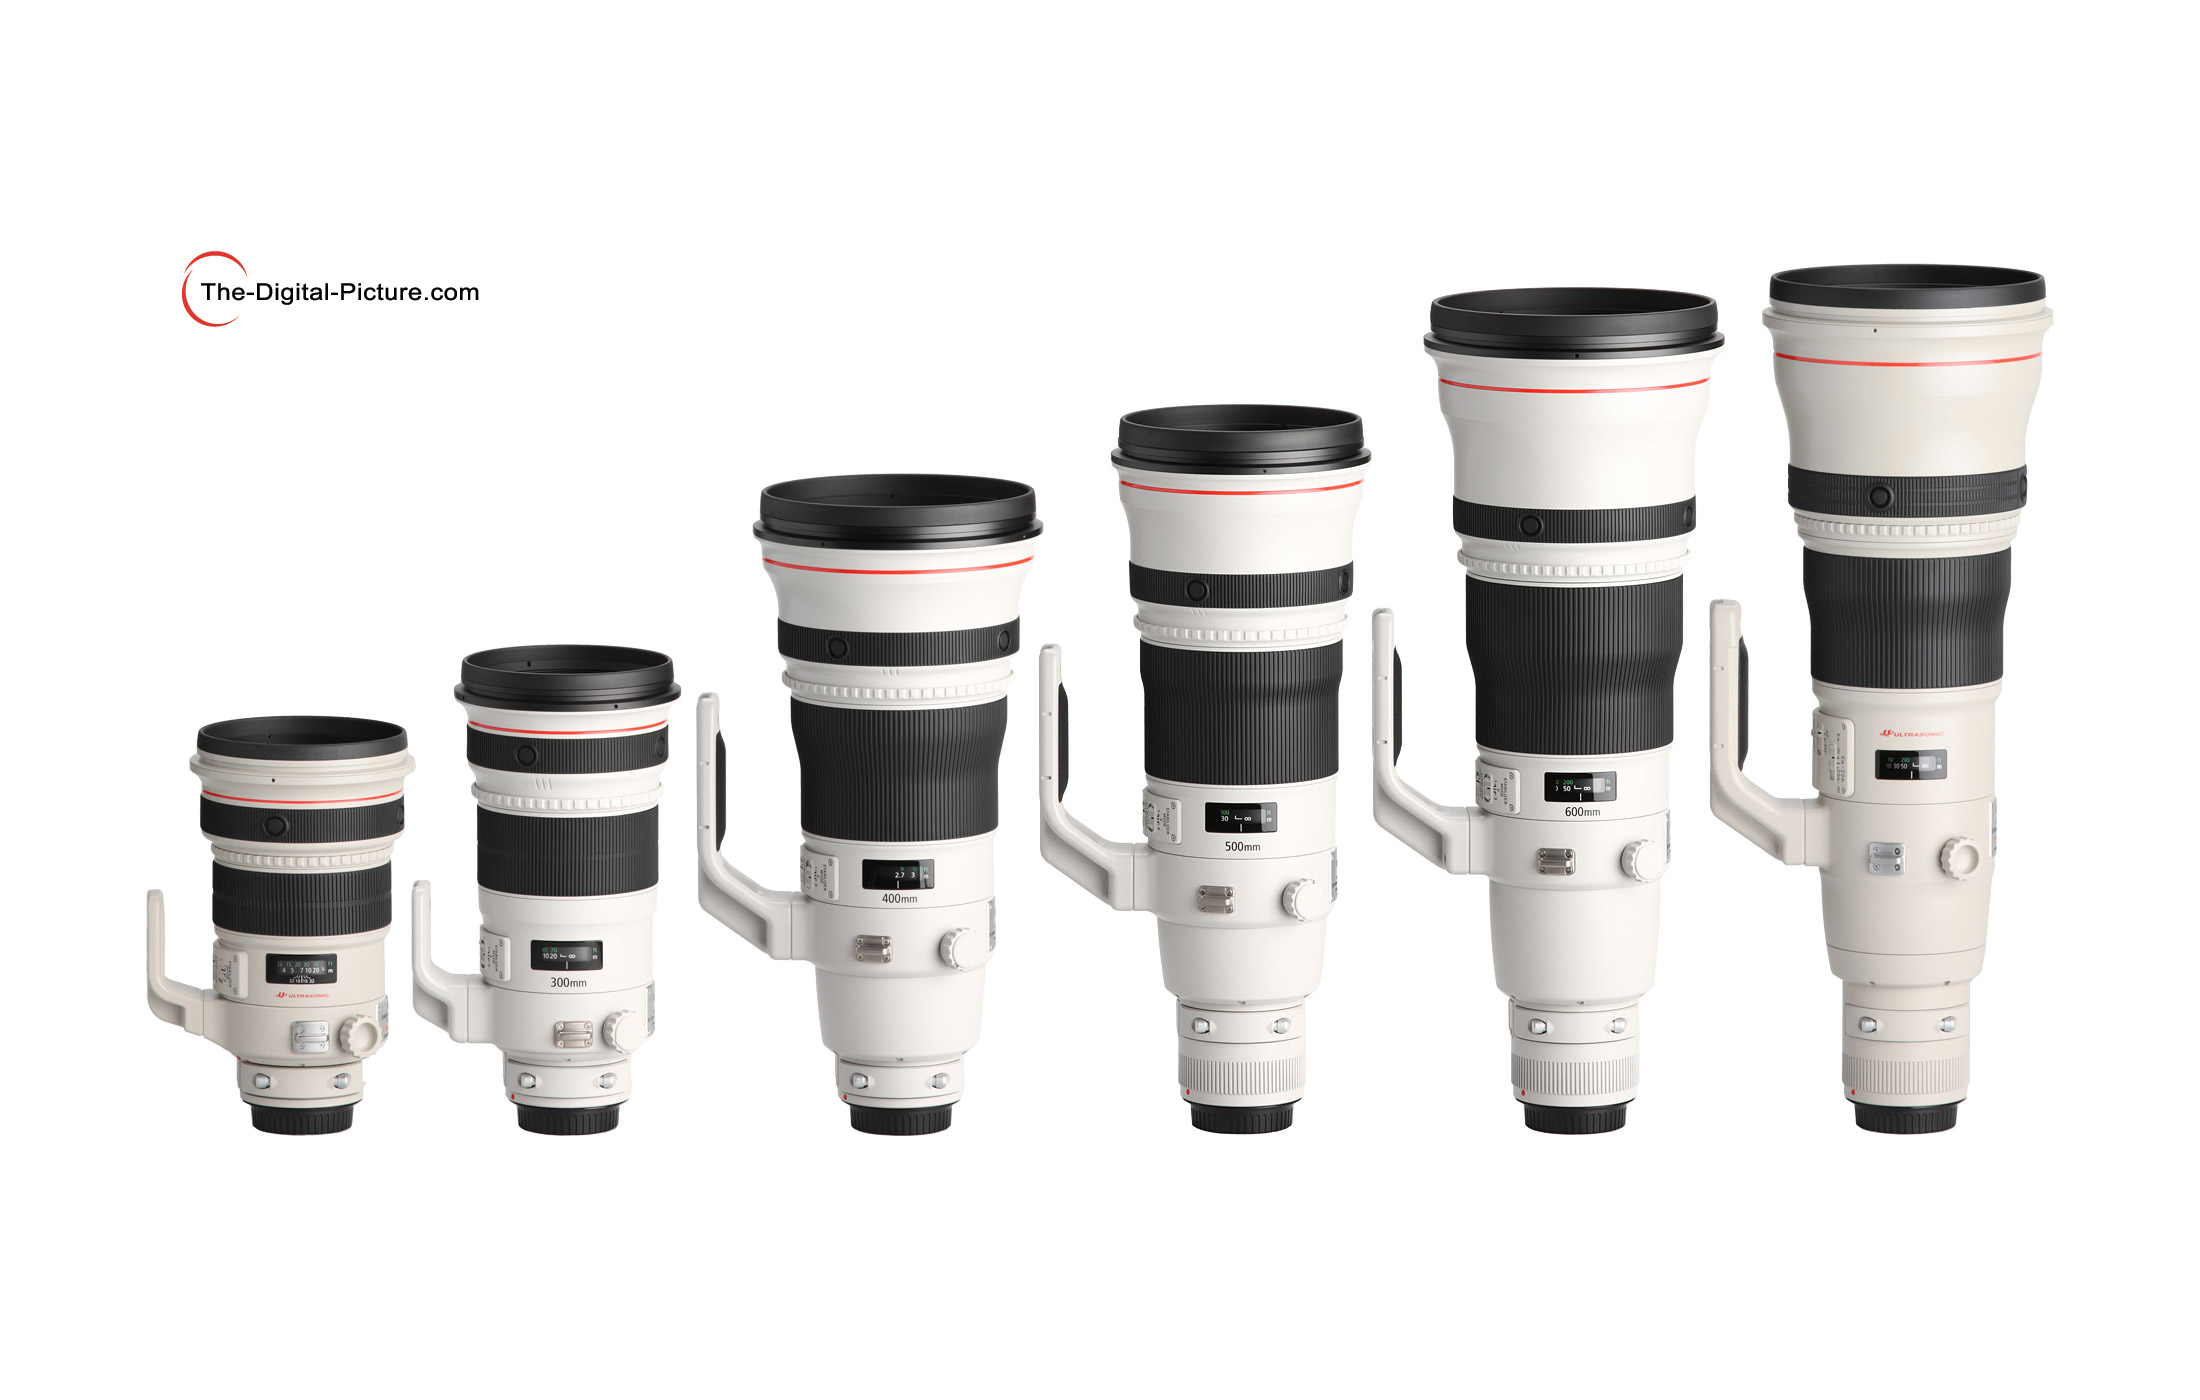 Canon Ef 600mm F 4l Is Ii Usm Lens Review